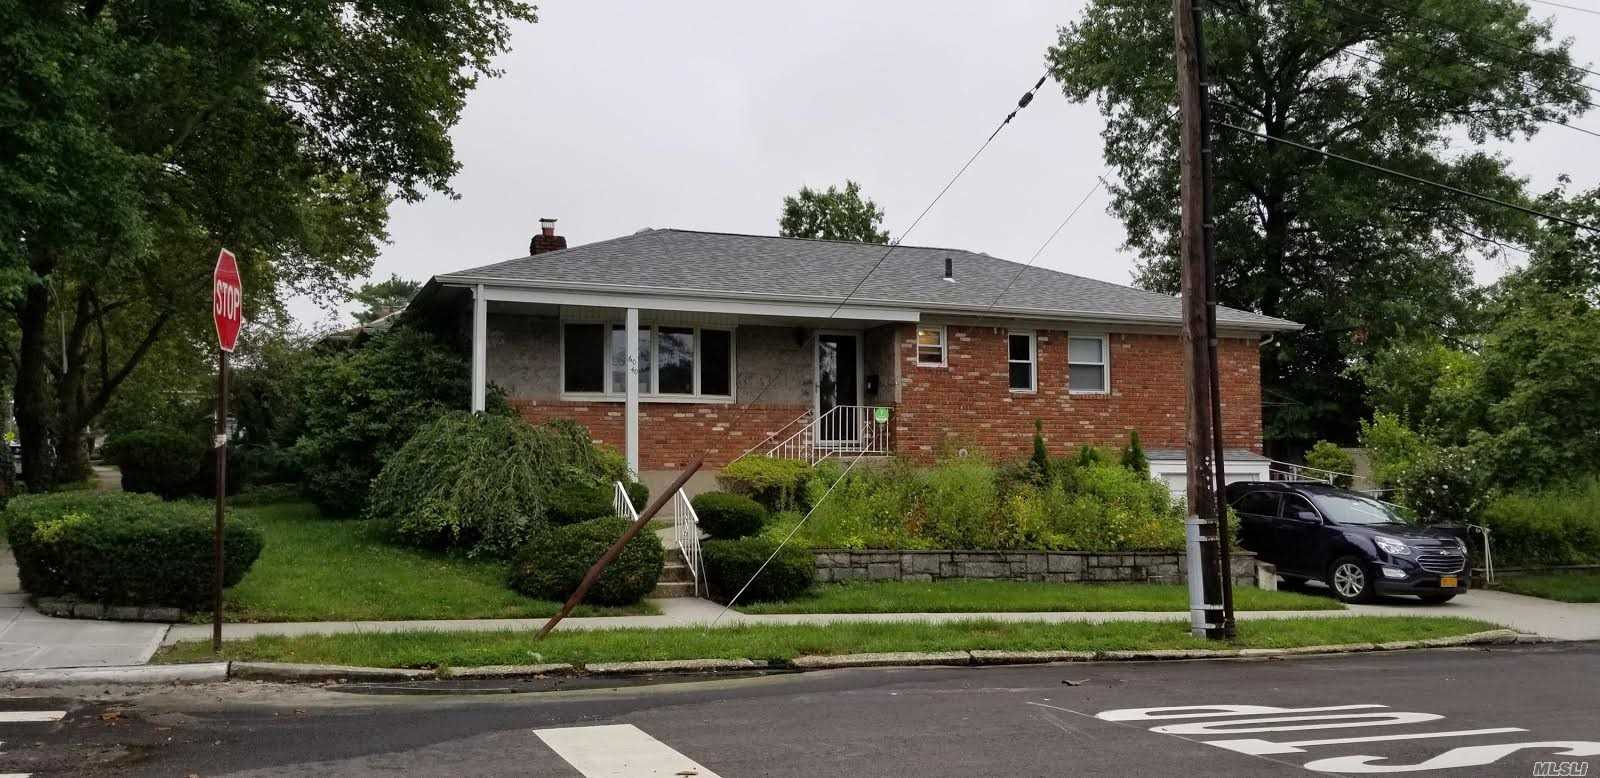 Beautiful Brick Ranch Home In The Little Neck Area. Updated Eik W/ Granite Counter-Top & Stainless Steel Appliances,  Hardwood Floors , Finished Basement, Near Public Transportation.